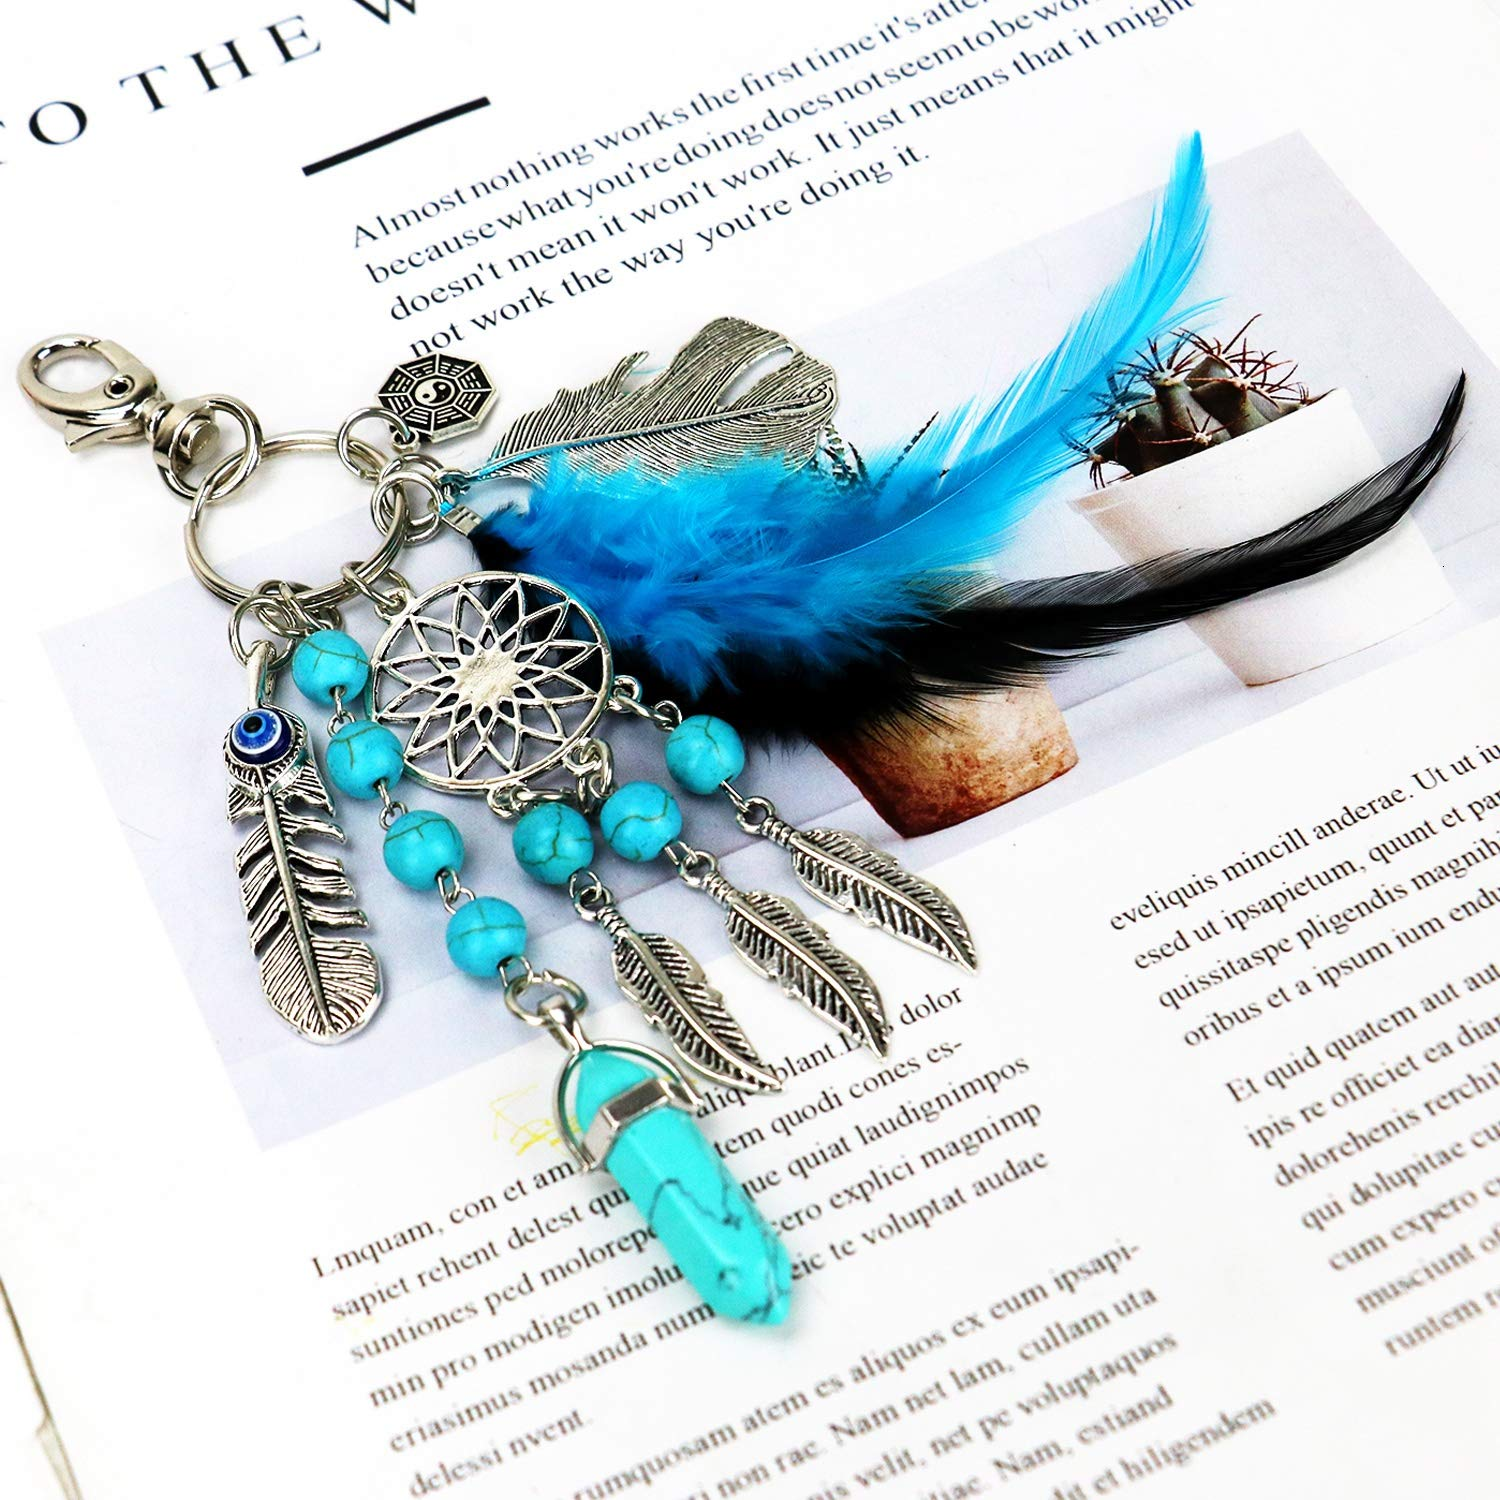 Buorsa Natural Opal Stone Dreamcatcher Keyring Feather Keychain Dream Catcher Keyring for Women Purse Pendant Handbag Keyholder Bag Charm